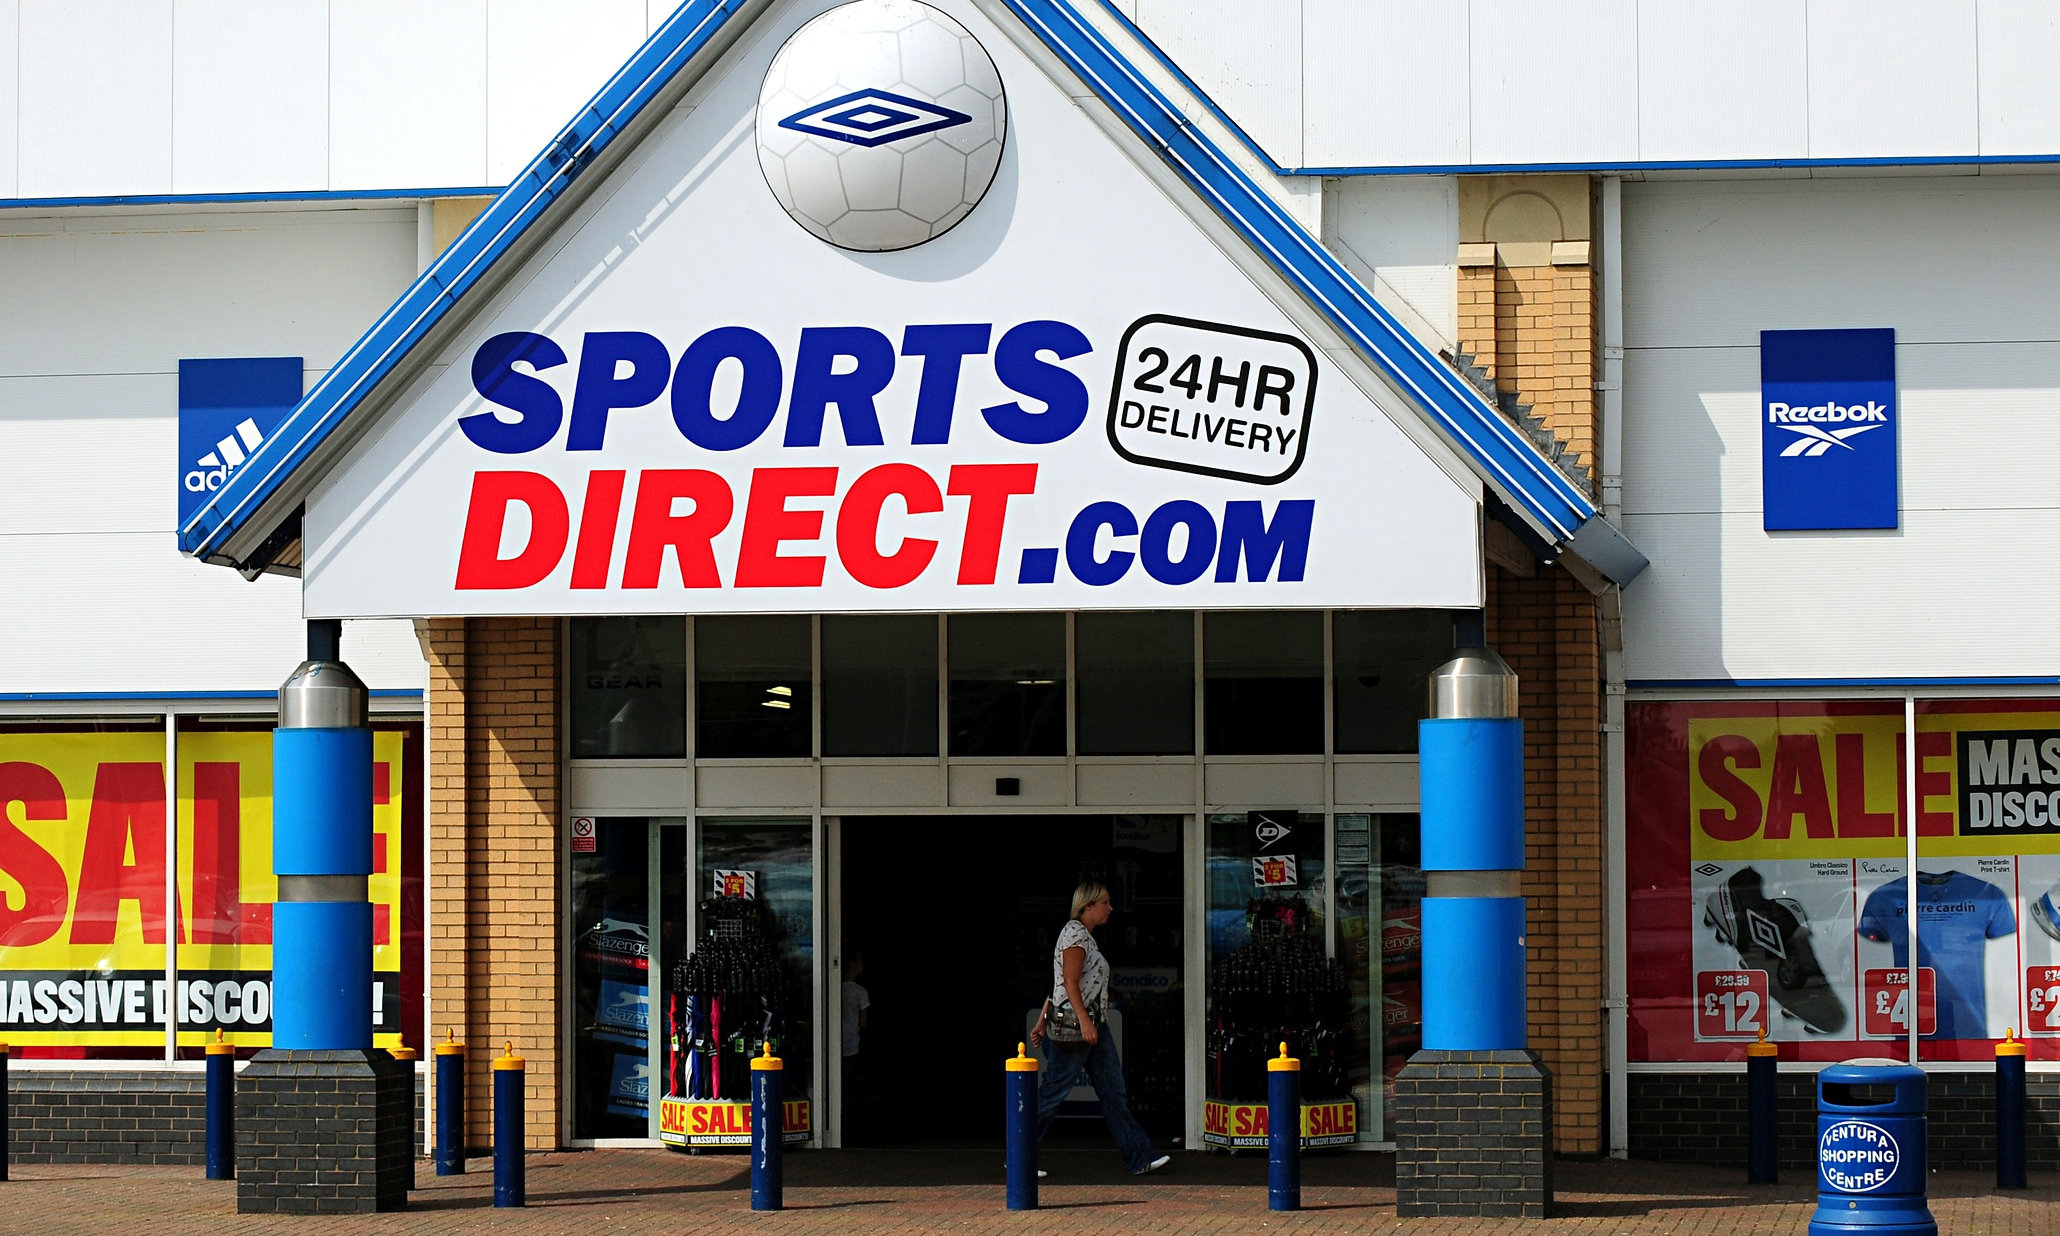 sports direct reveals date of working practices report. Black Bedroom Furniture Sets. Home Design Ideas